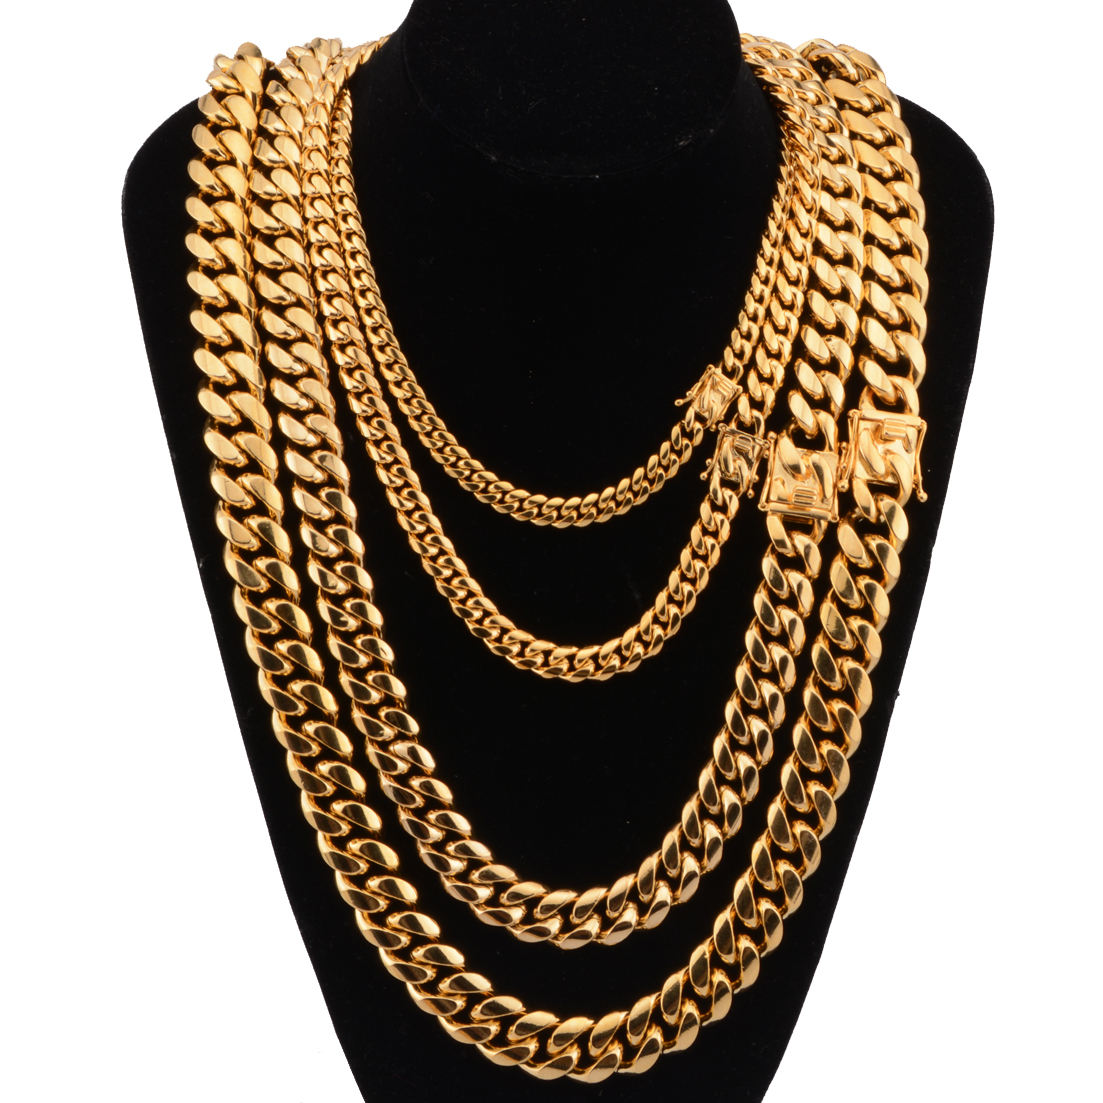 8mm 10mm 12mm 14mm 16mm 18mm HipHop Stainless Steel Gold Miami Cuban Link heavy metal Bling Chain Necklace for Men Women